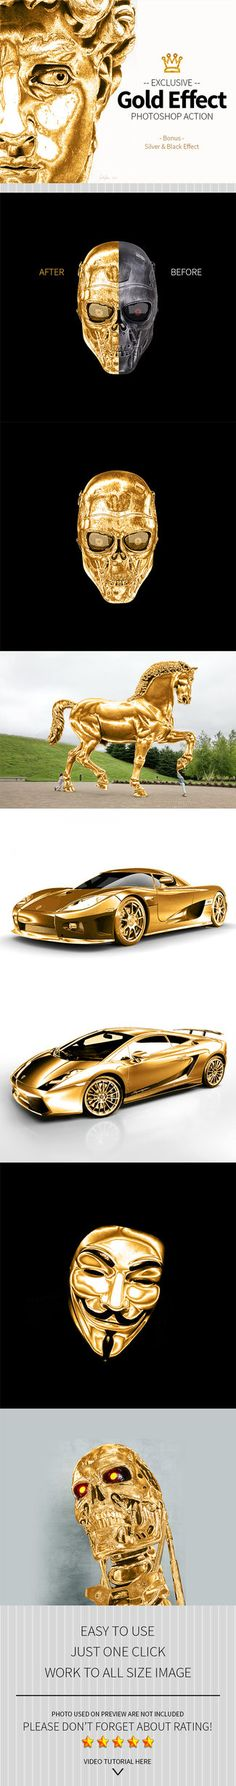 DOWNLOAD: goo.gl/HWza0F Gold Effect Photoshop Action work with any image. Support 300 DPI. So you can use it in small or large picture.This action transforms your photos into professional Gold look...